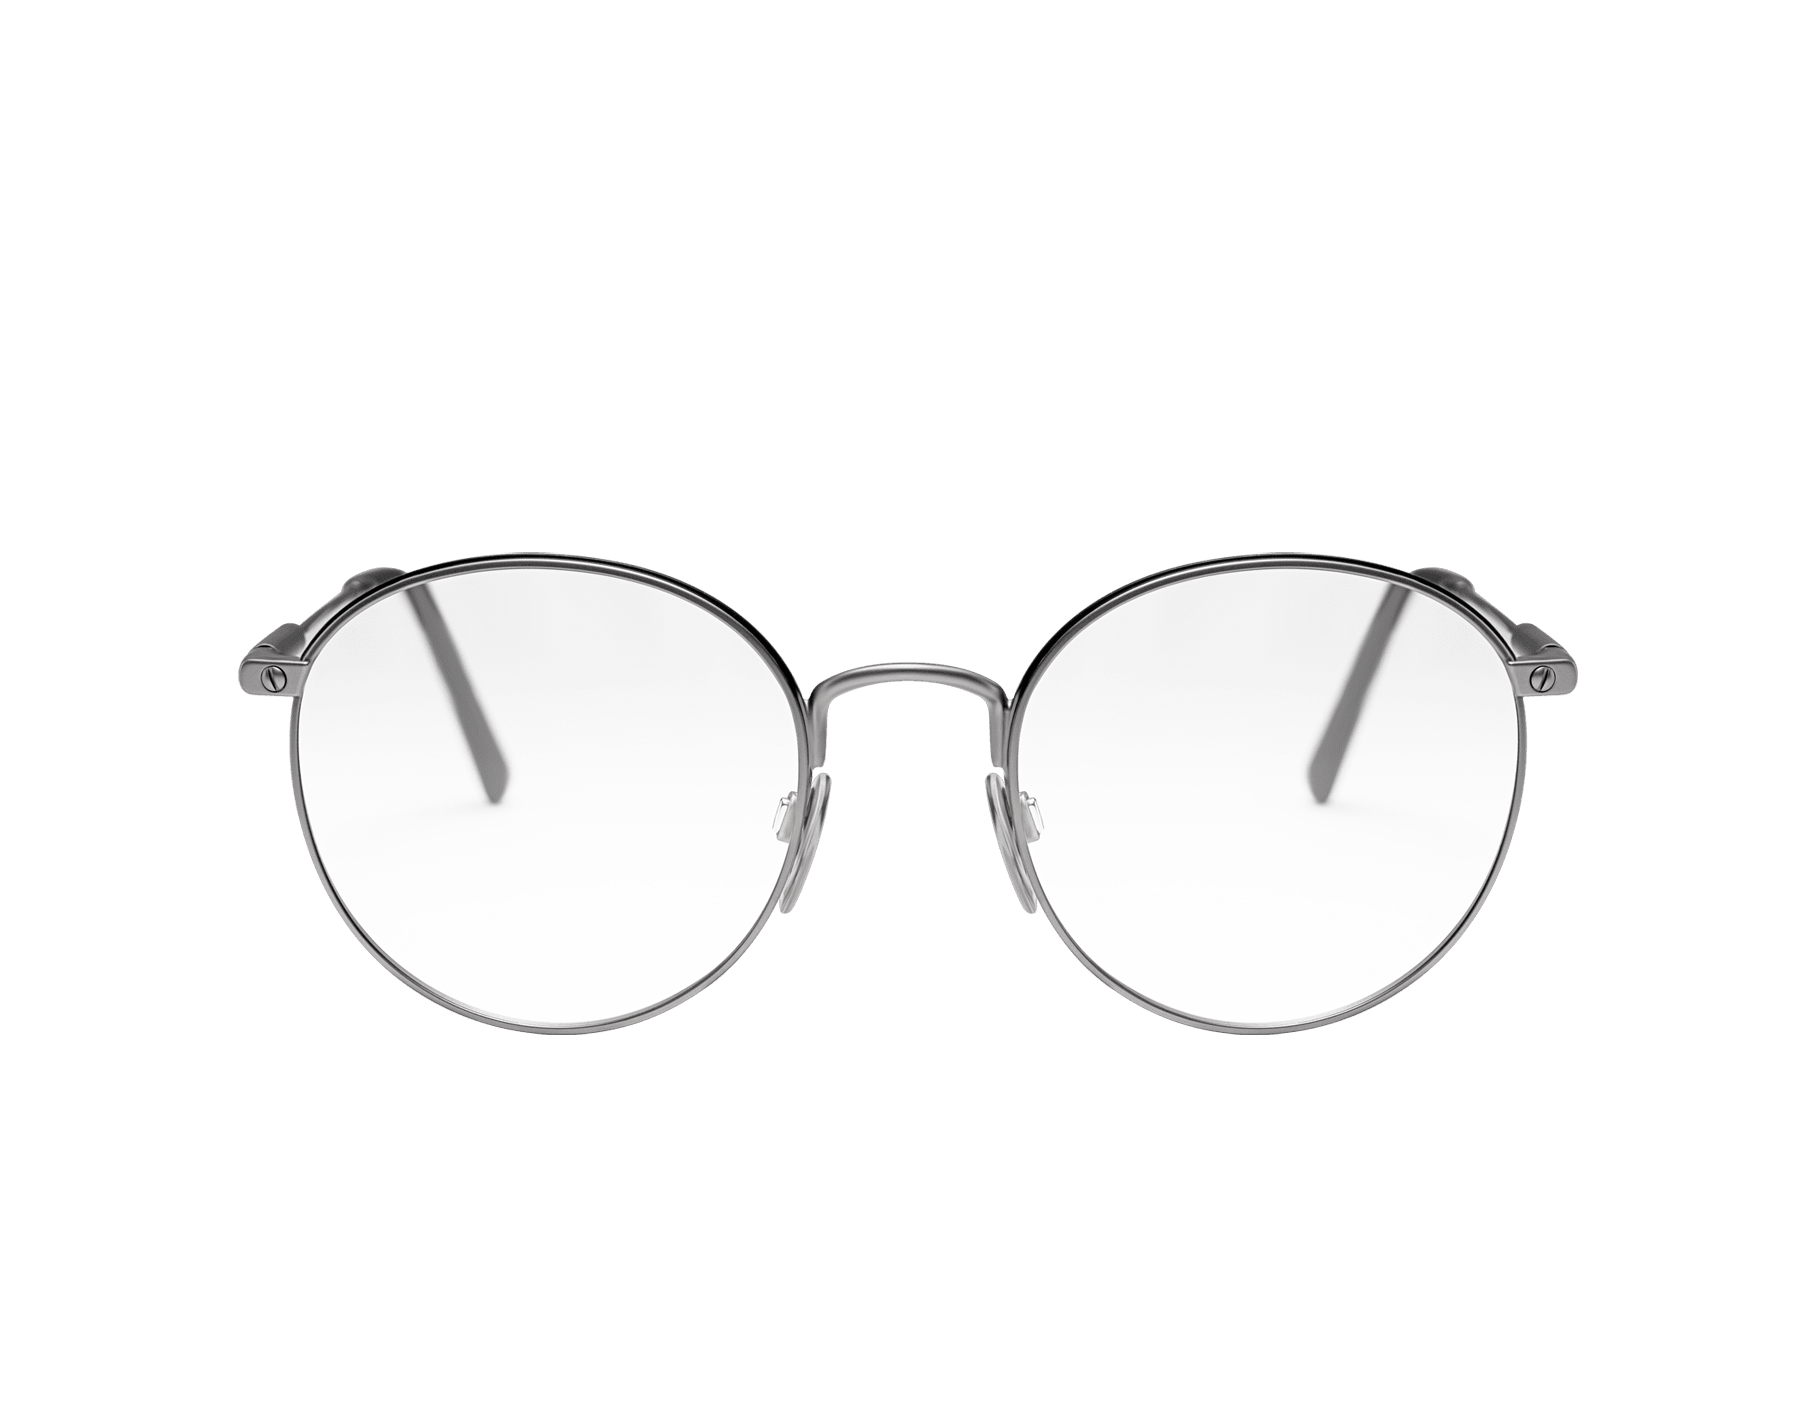 Bulgari Diagono round metal glasses. 903936 image 2